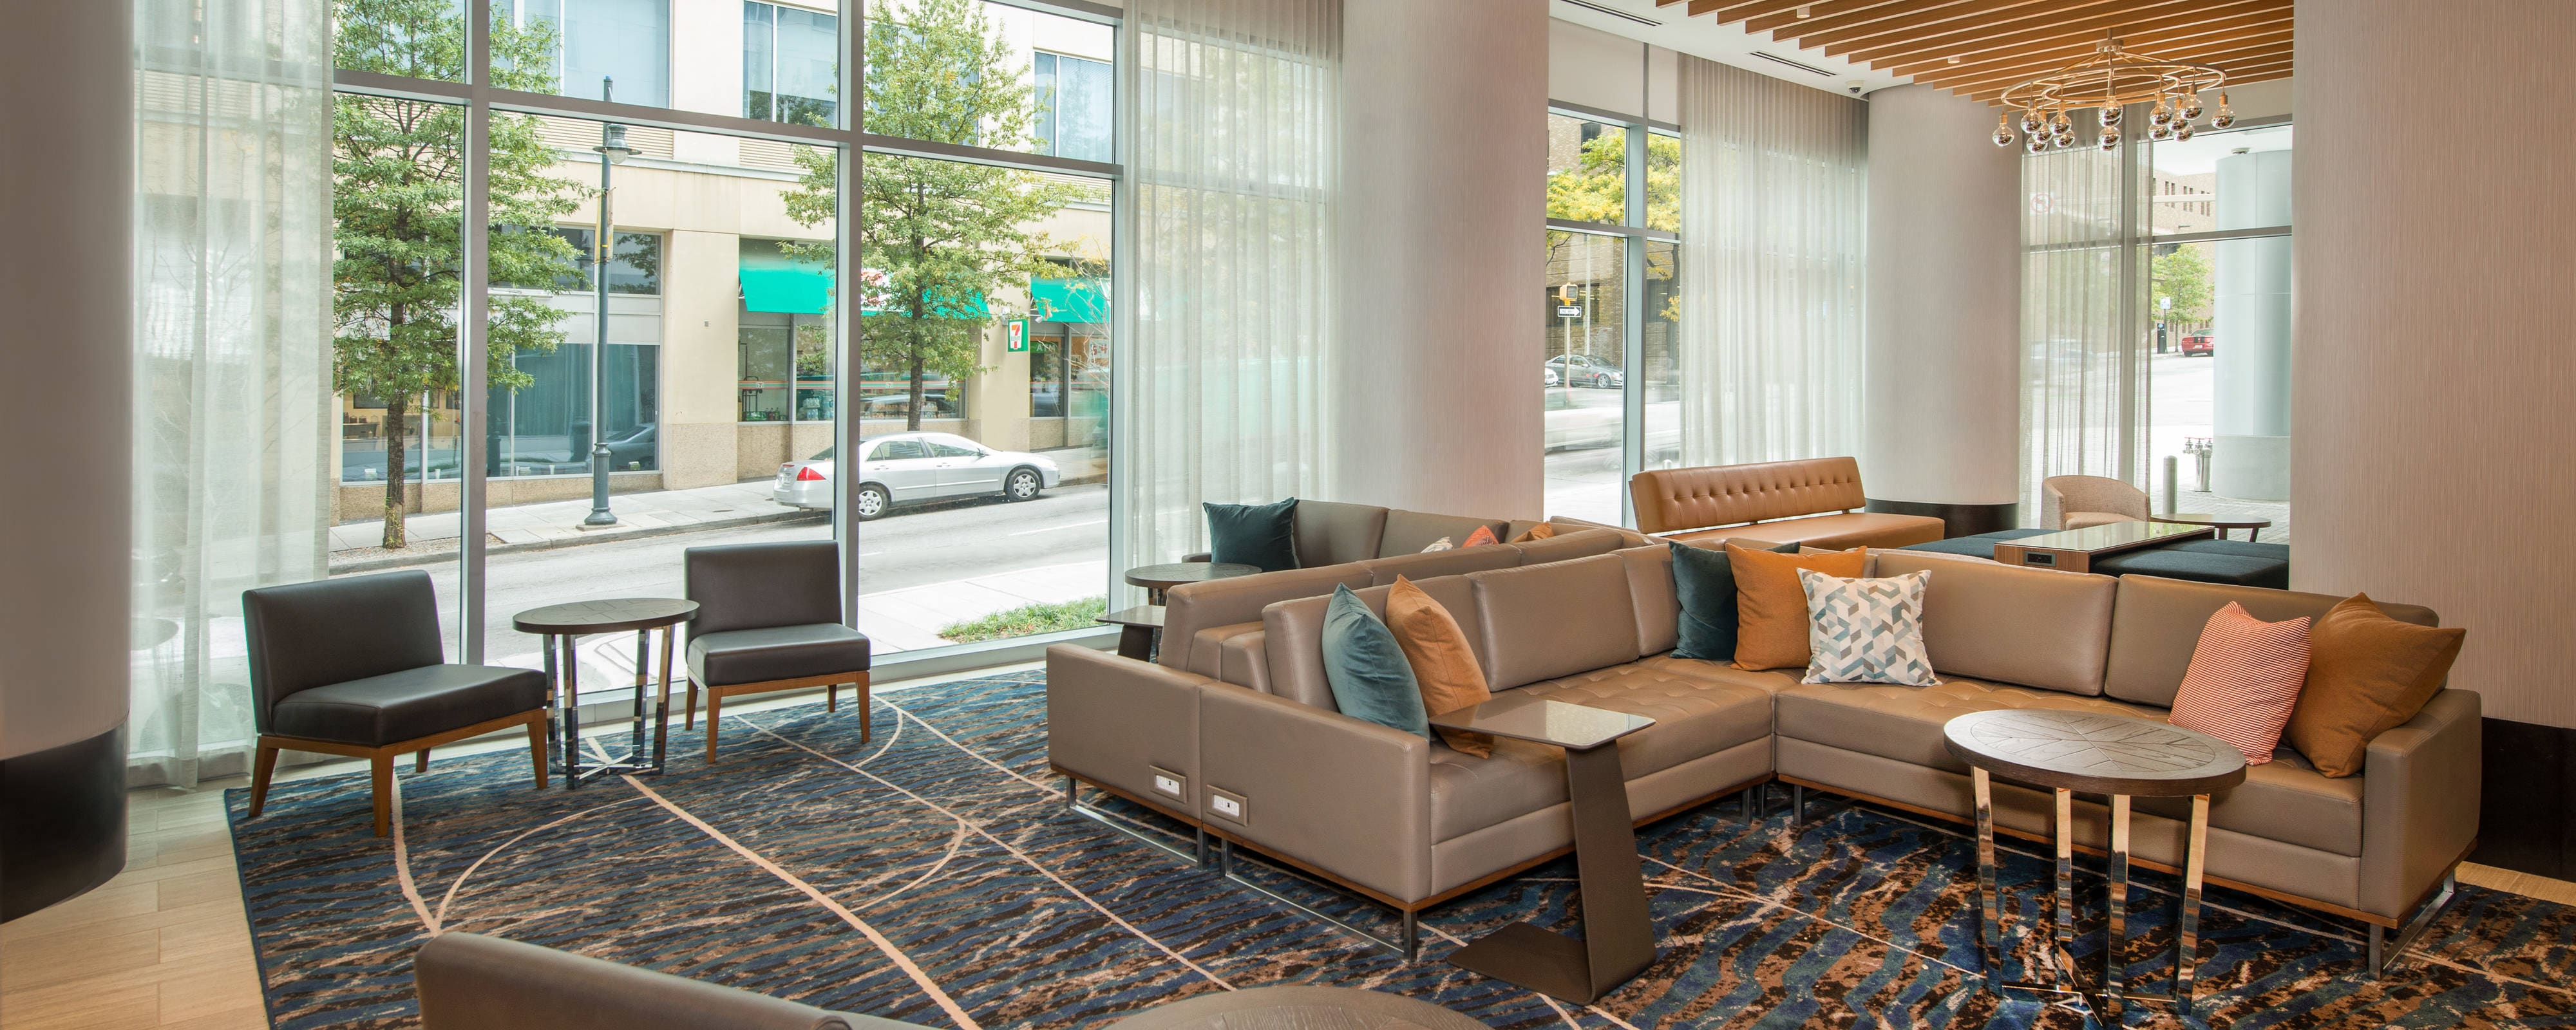 Excellent Downtown Baltimore Hotels Residence Inn Baltimore At The Download Free Architecture Designs Scobabritishbridgeorg